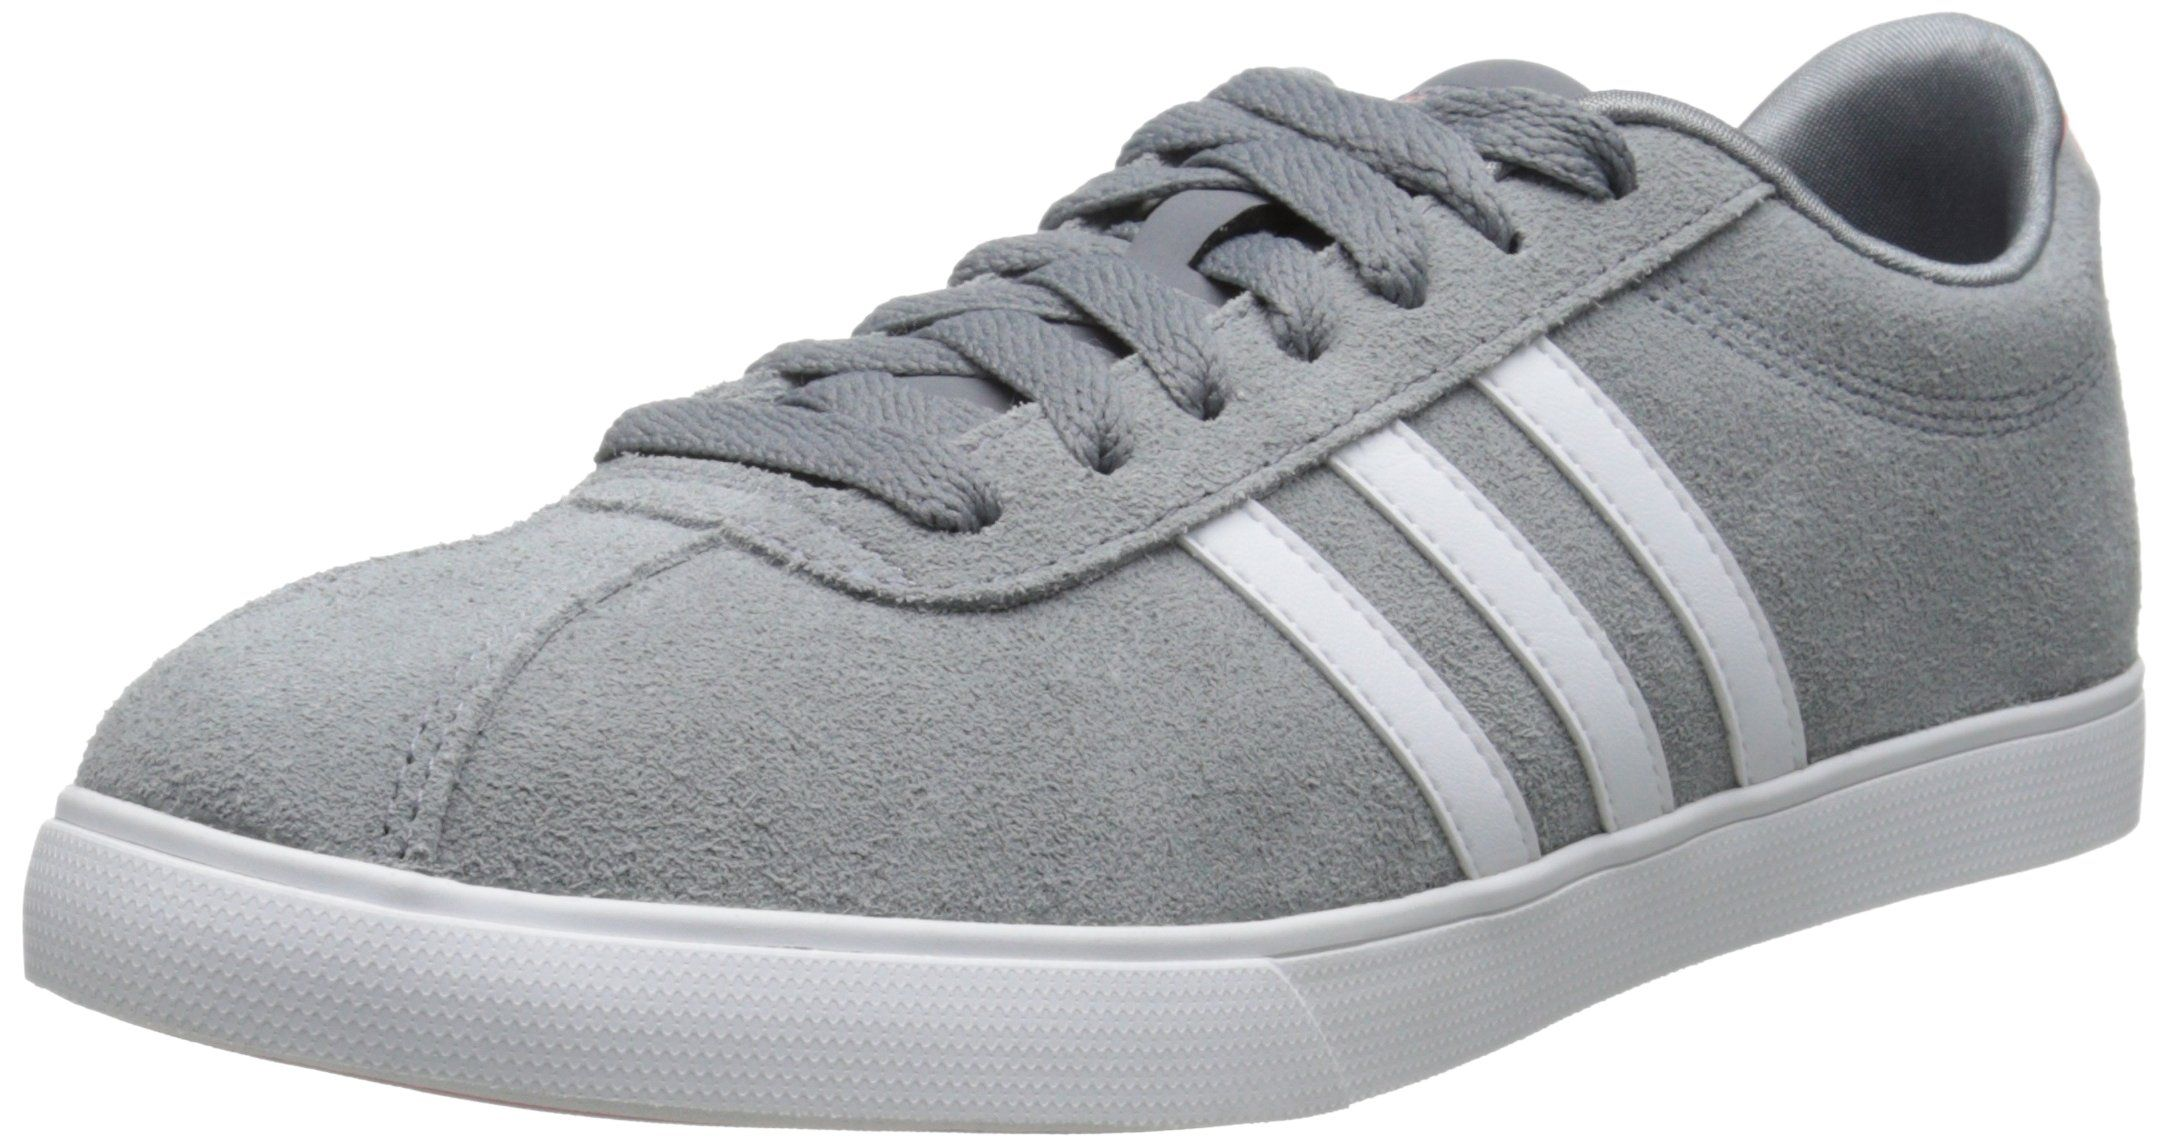 cheap for discount 4b927 f7fcb adidas NEO Women s Courtset Sneaker, Grey White Pink, 8 M US   Amazon.com